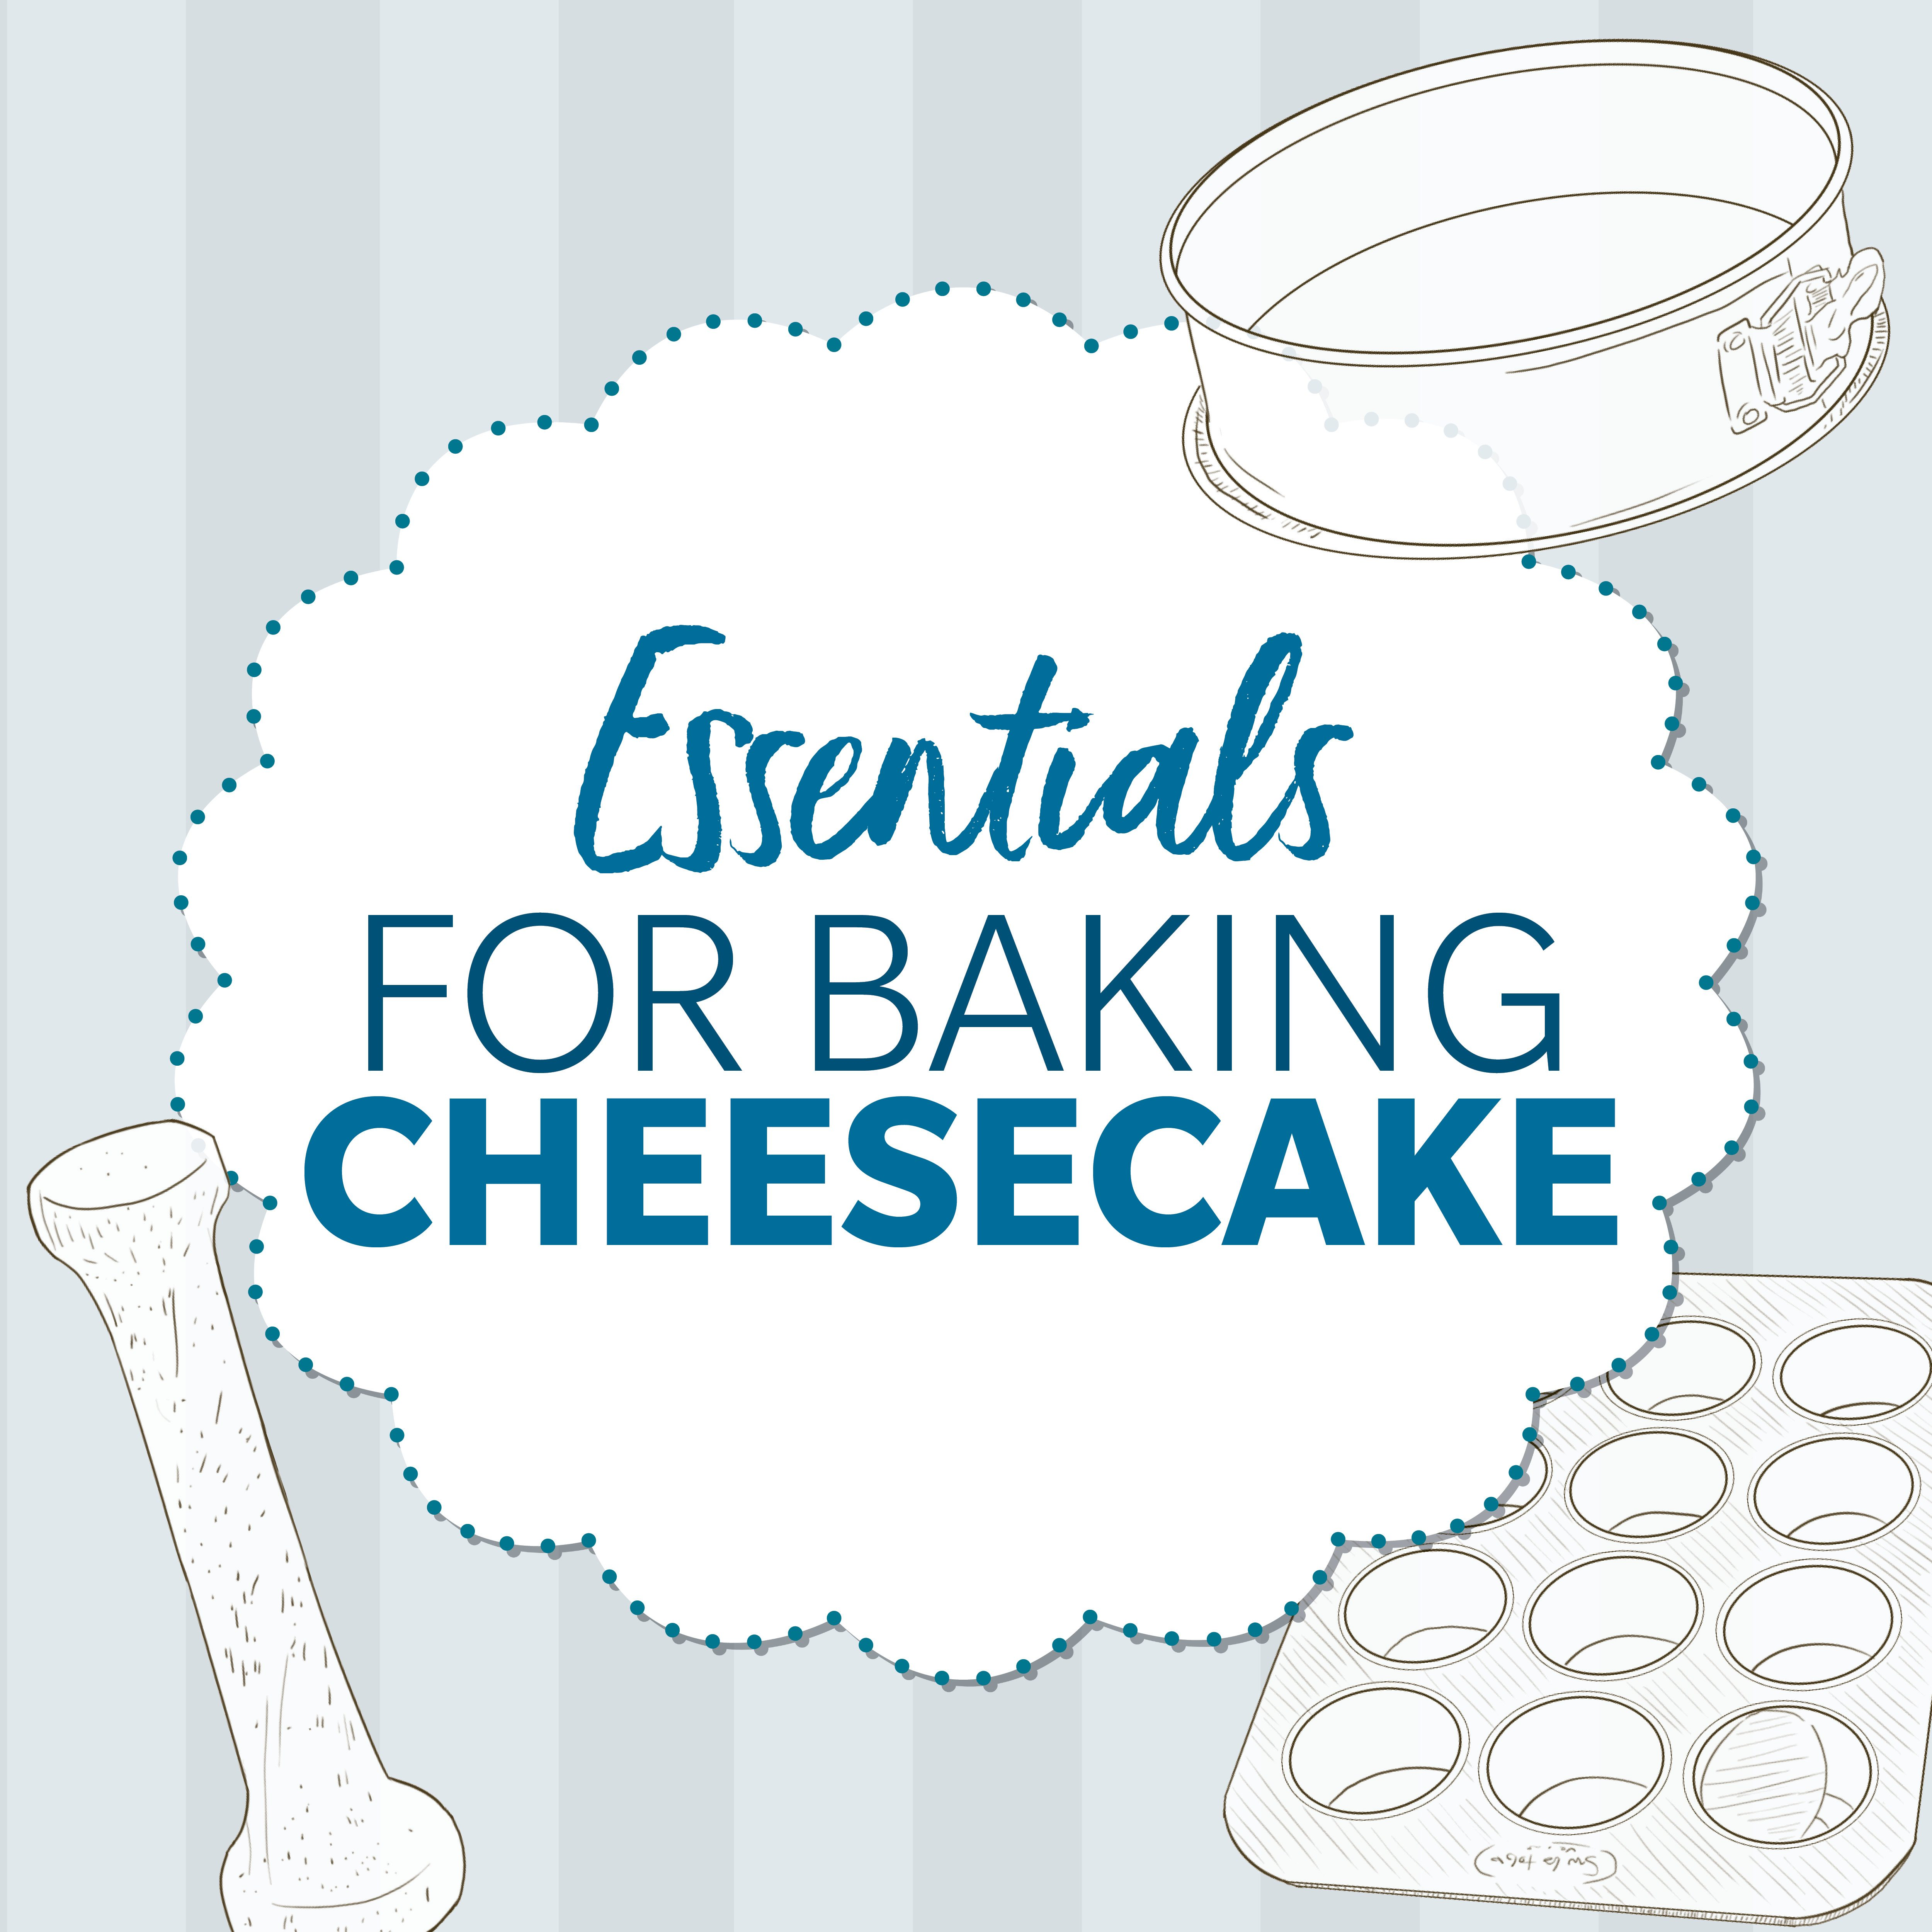 5 Must-Haves for Making the Perfect Cheesecake